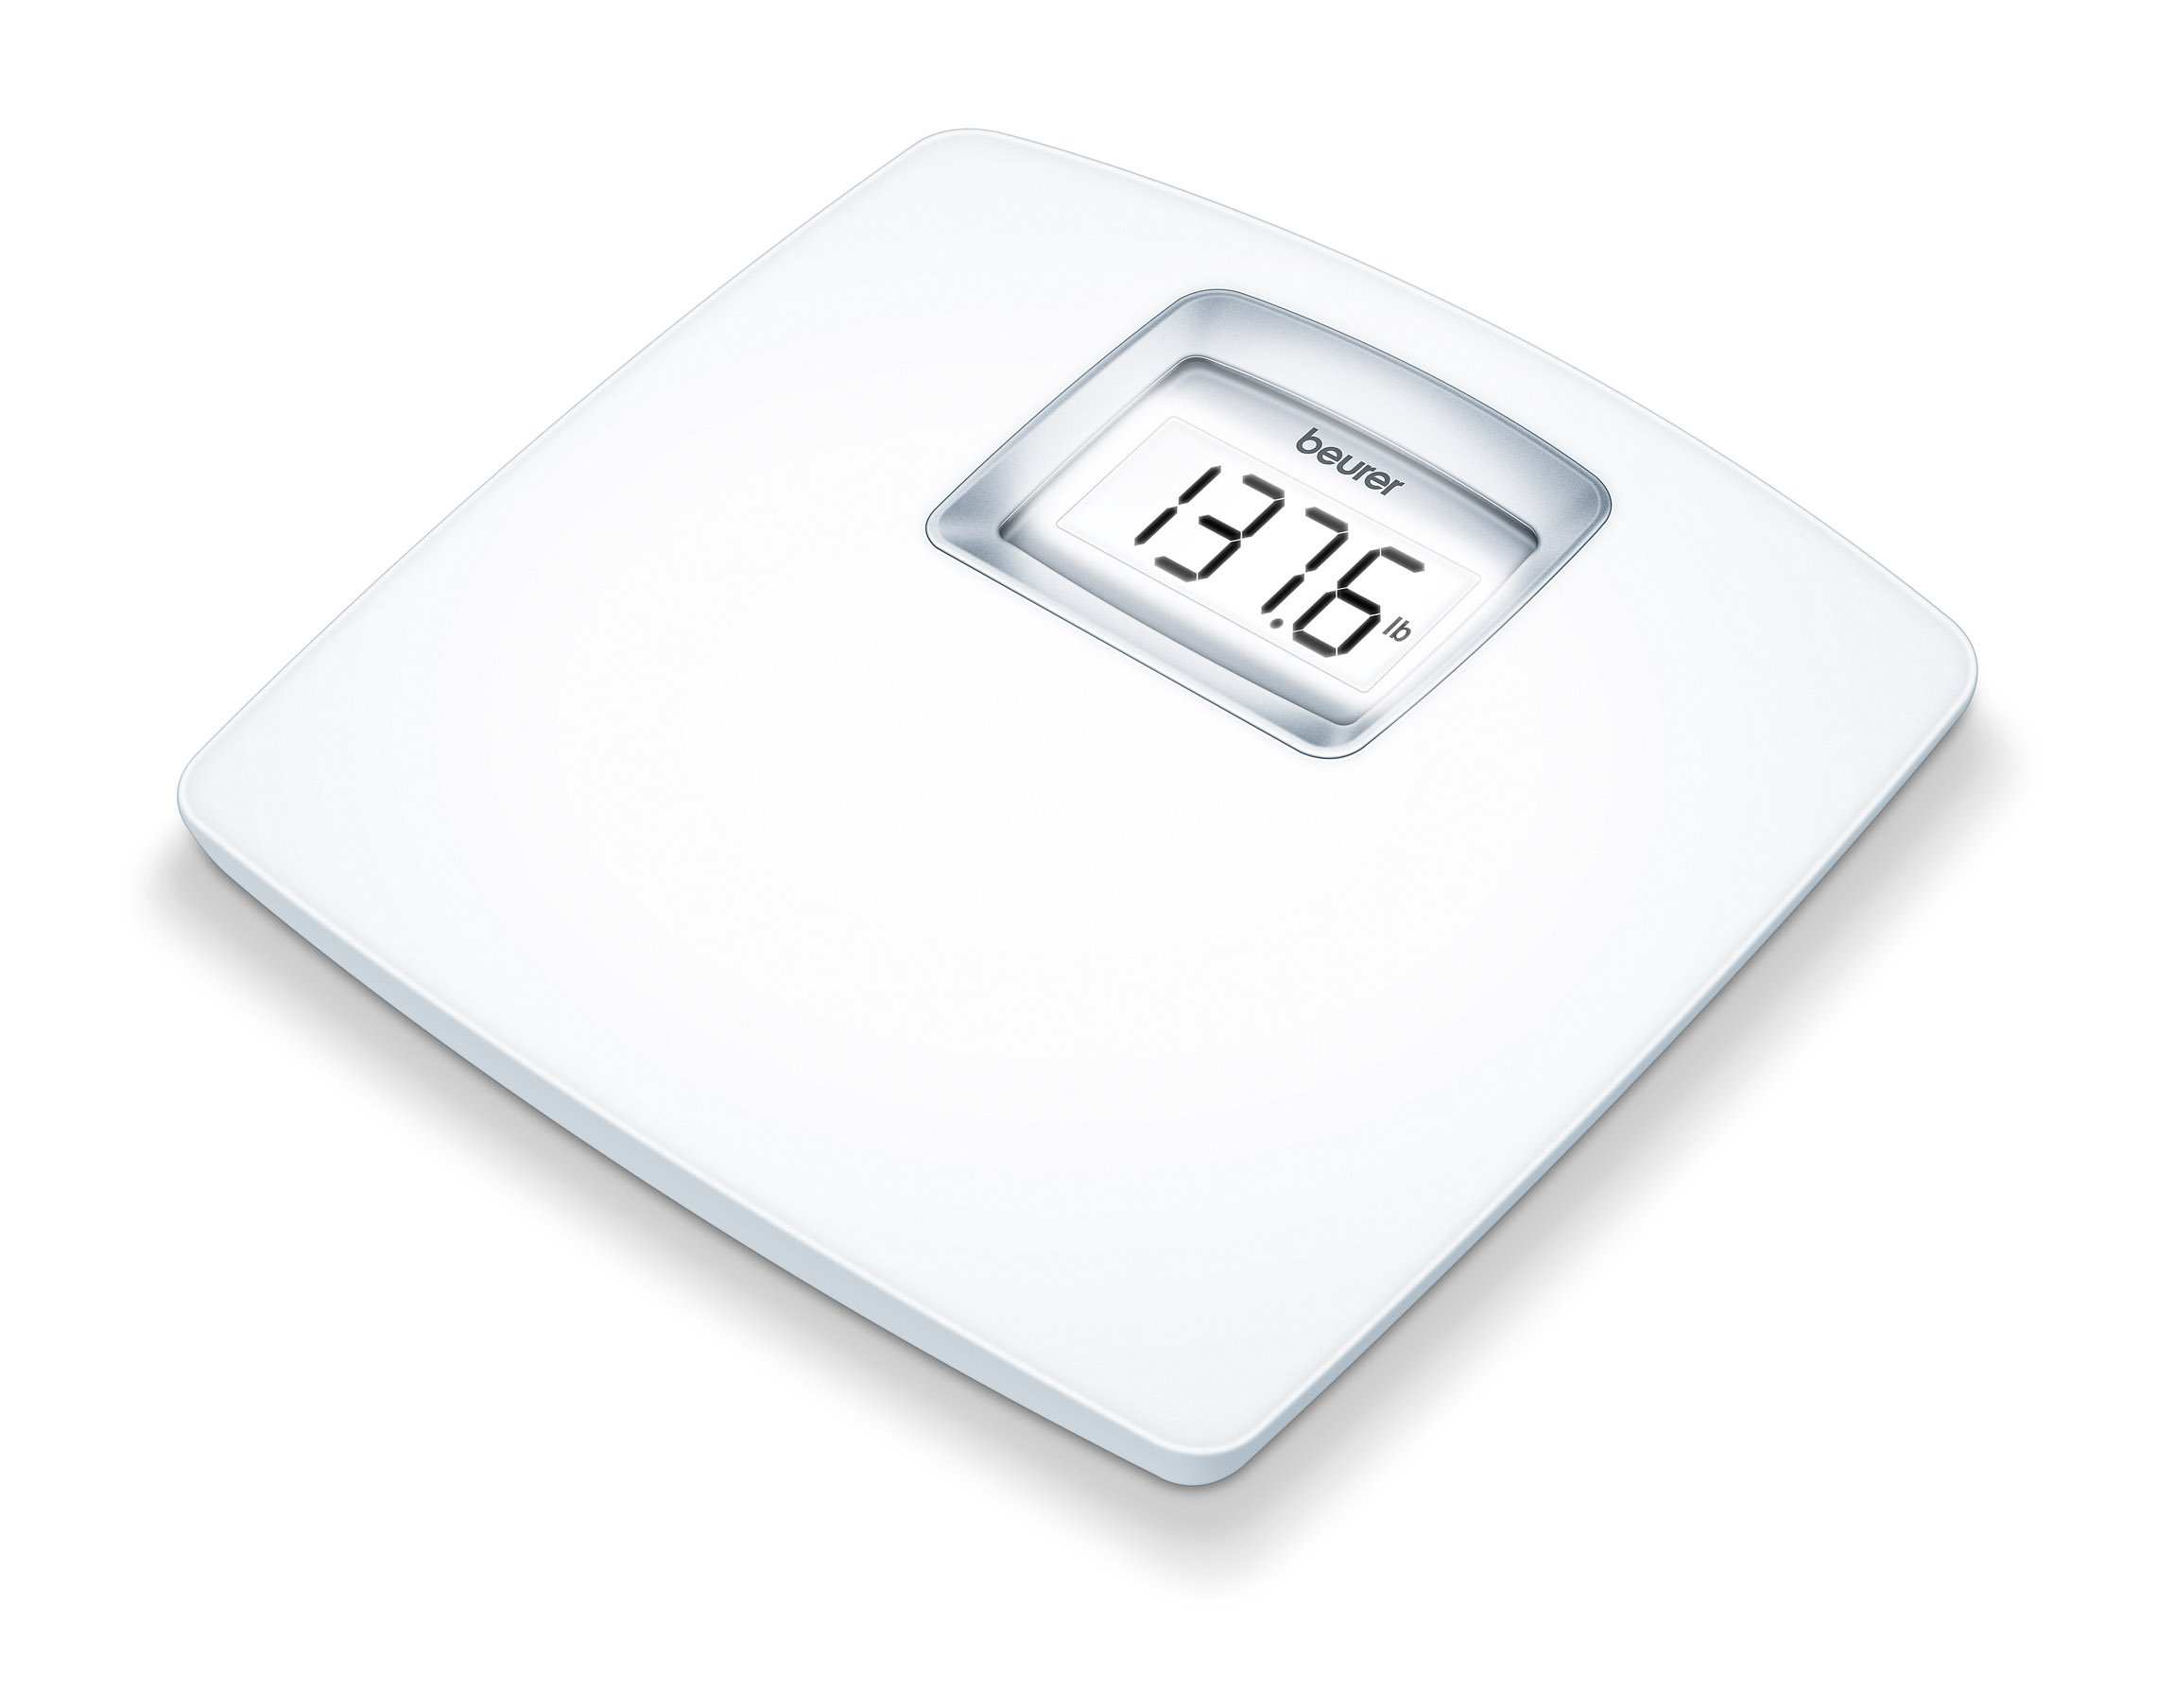 Beurer White Digital Bathroom Scale with Extra Large LCD Display, White Illumination